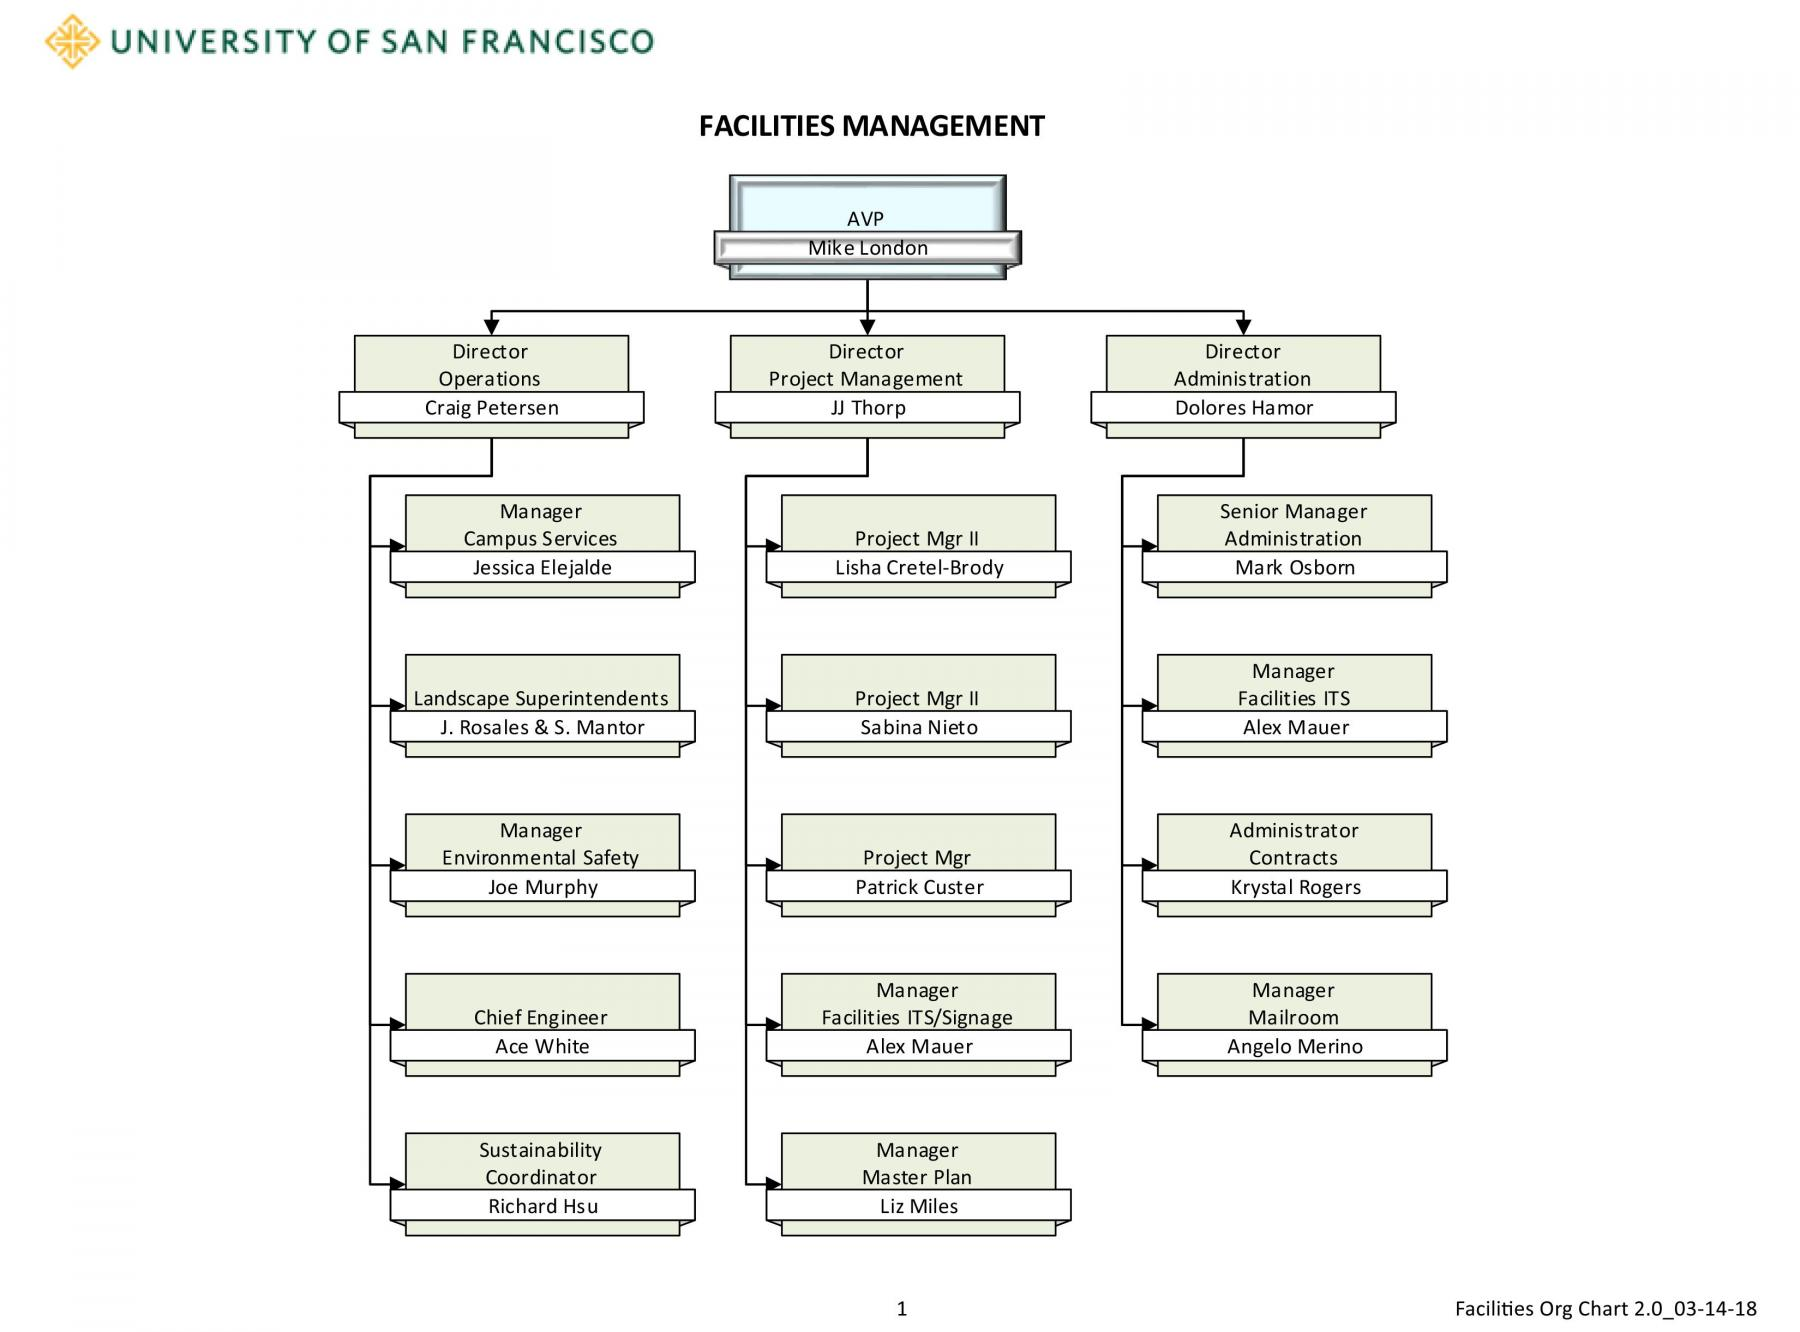 Facilities management chart